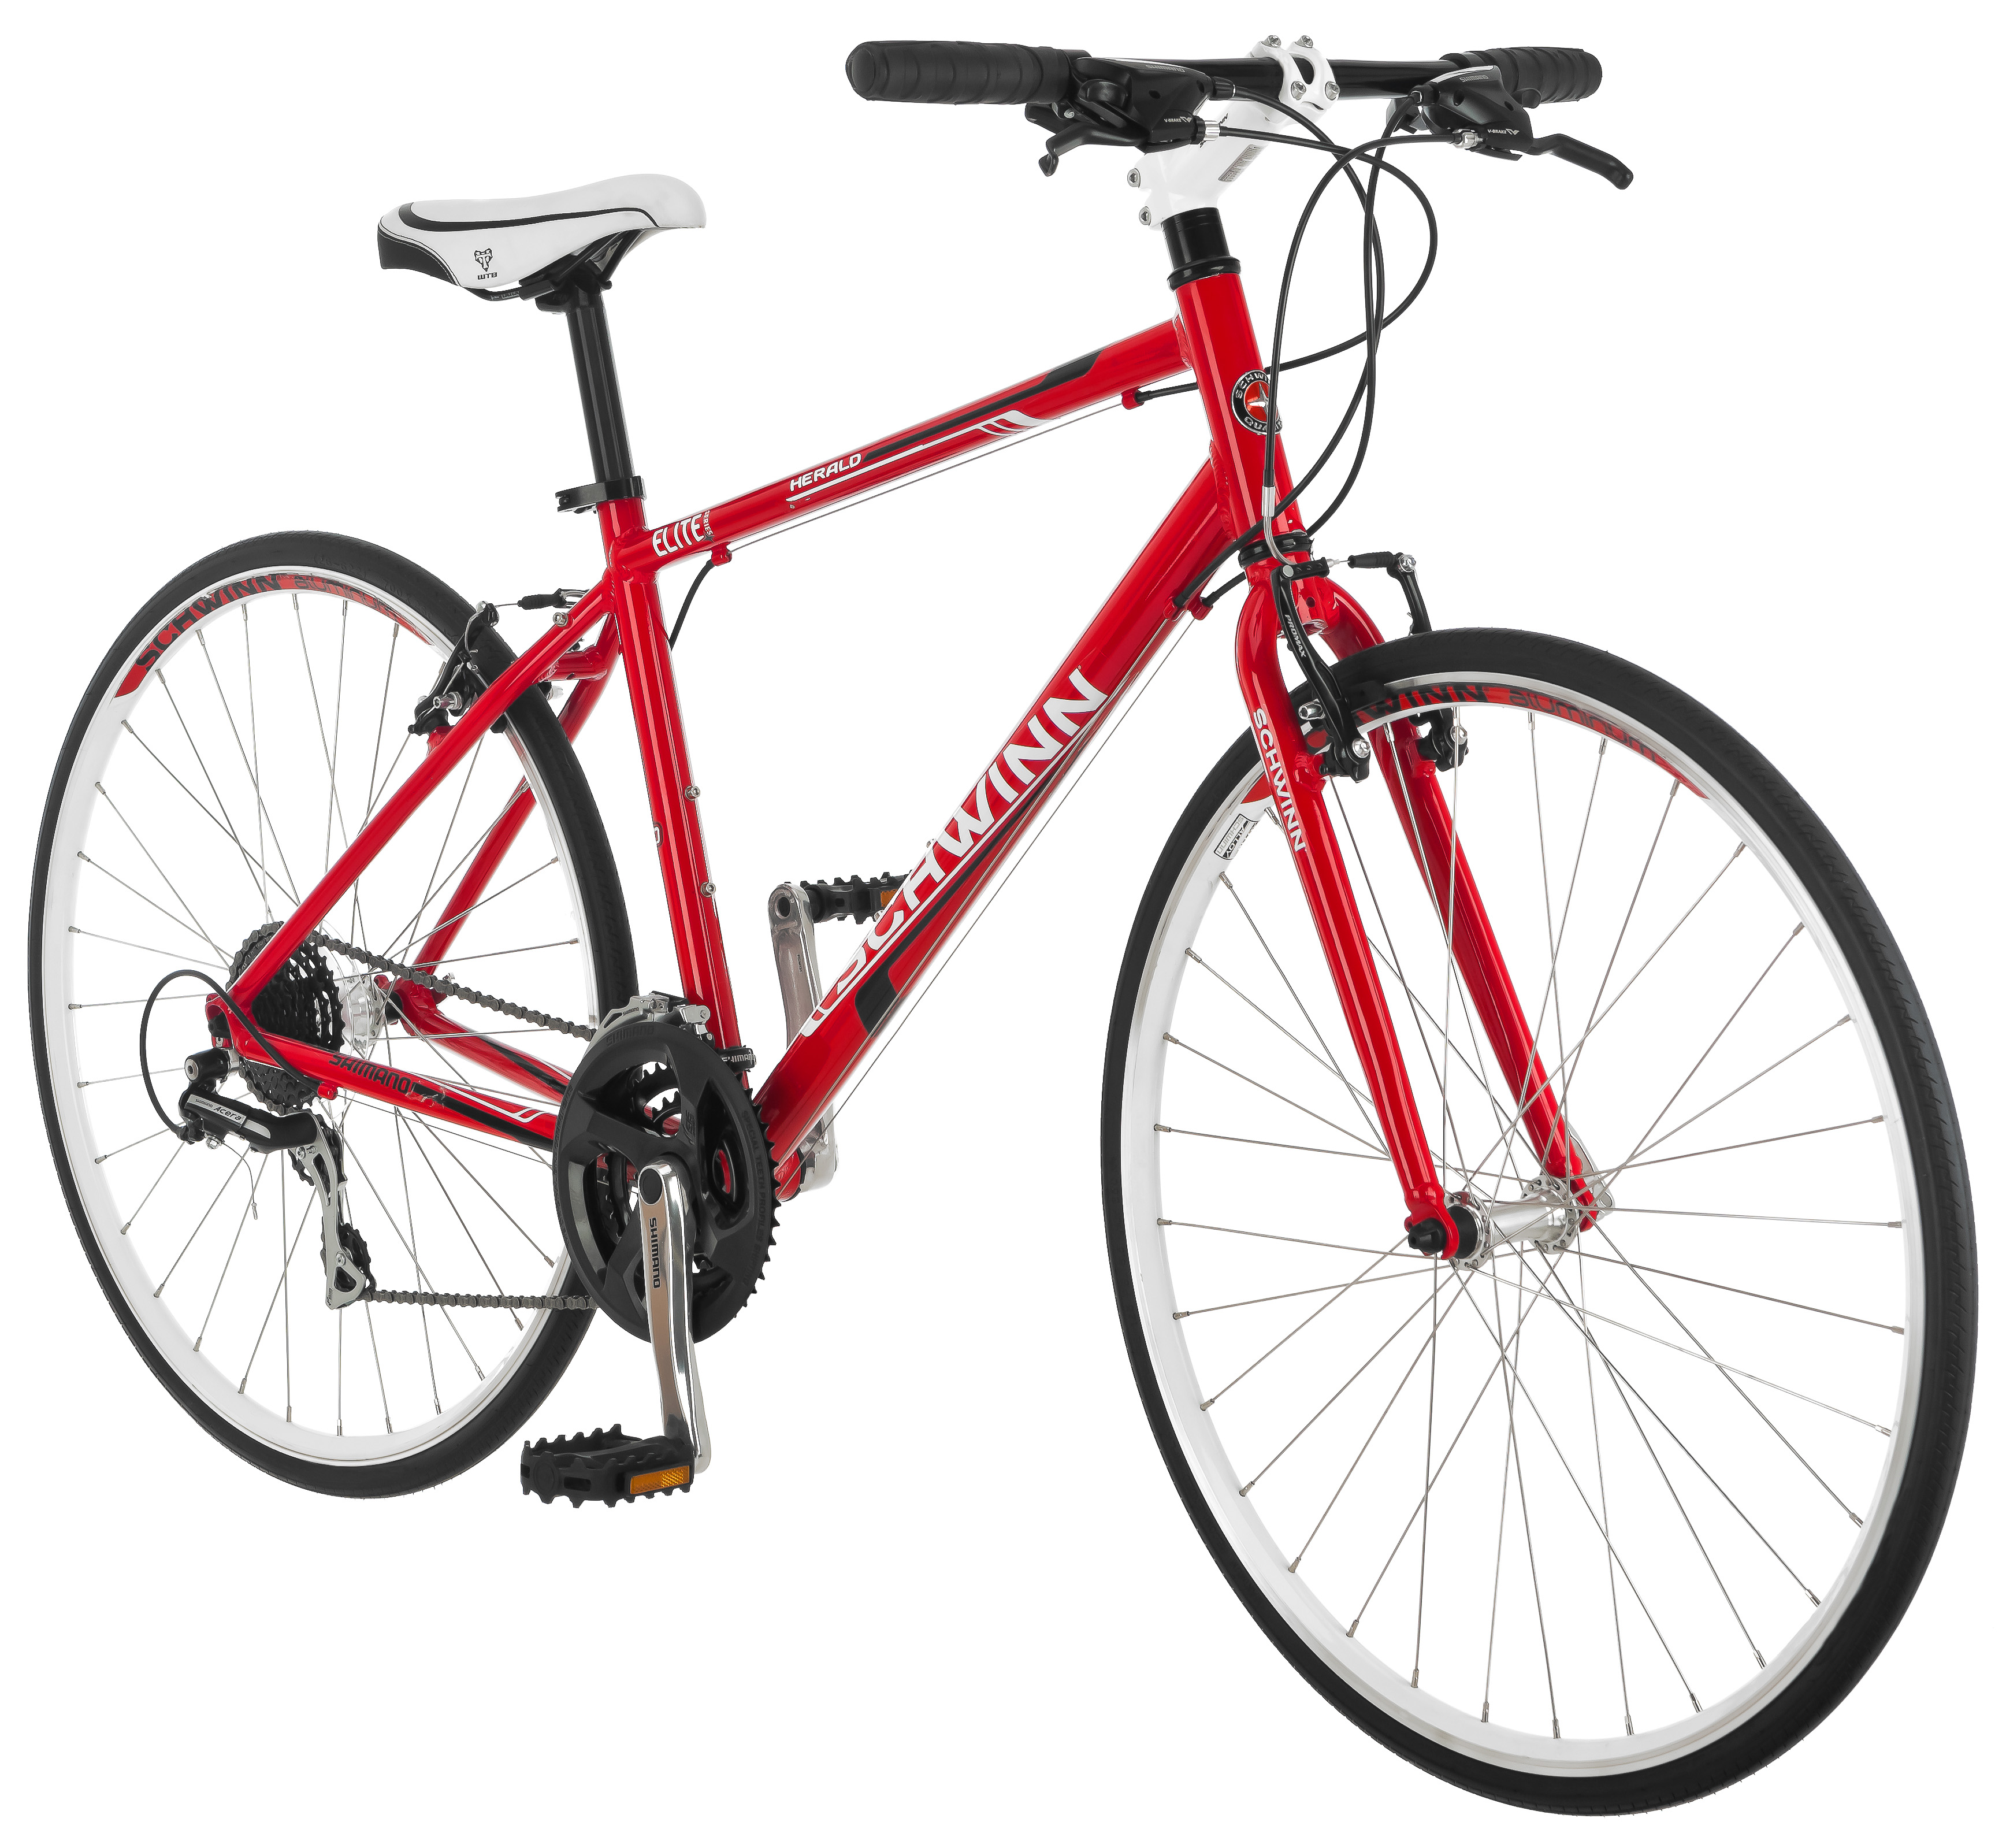 Schwinn 700c Herald 2.0 Mens' Road Bike, Red